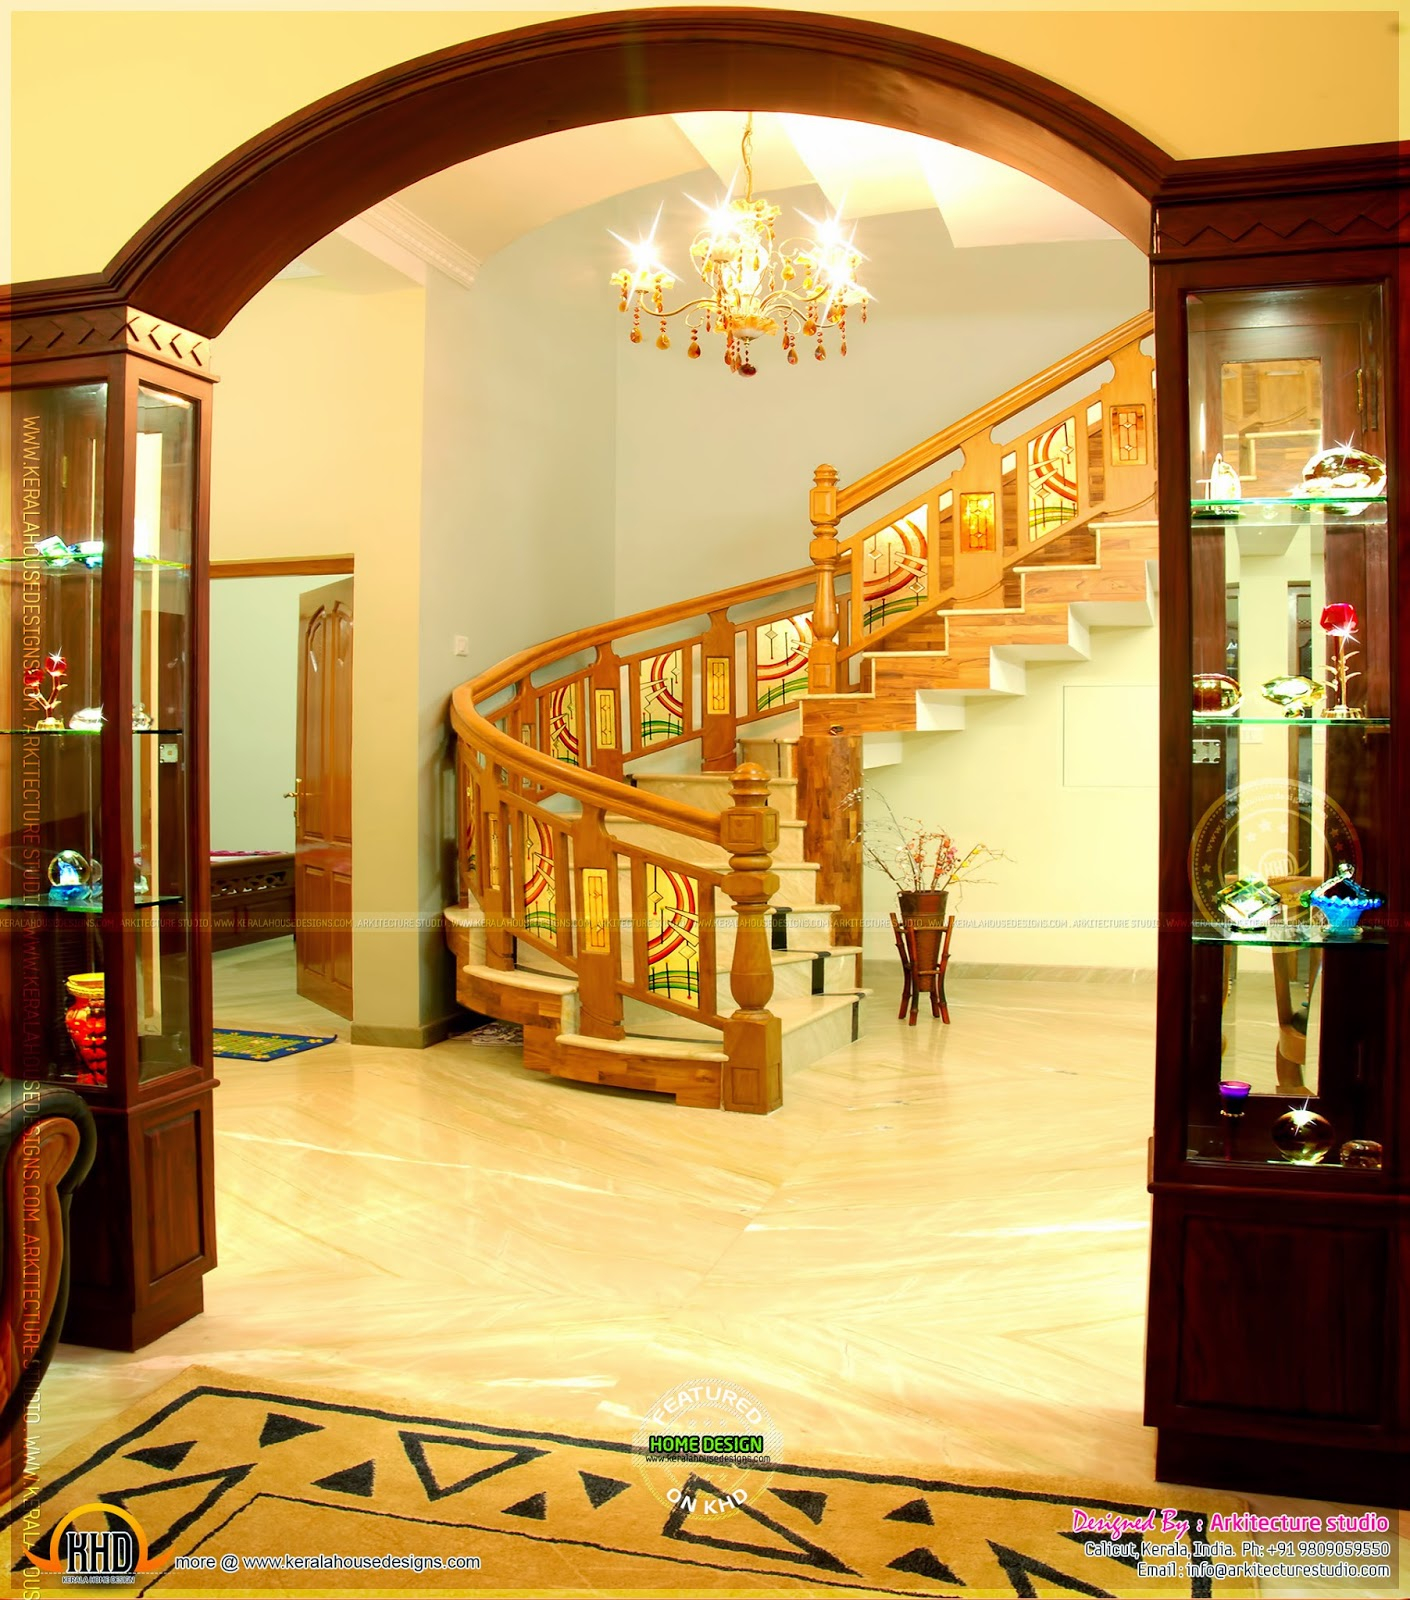 Real house in kerala with interior photos kerala home for Interior designs photos for home